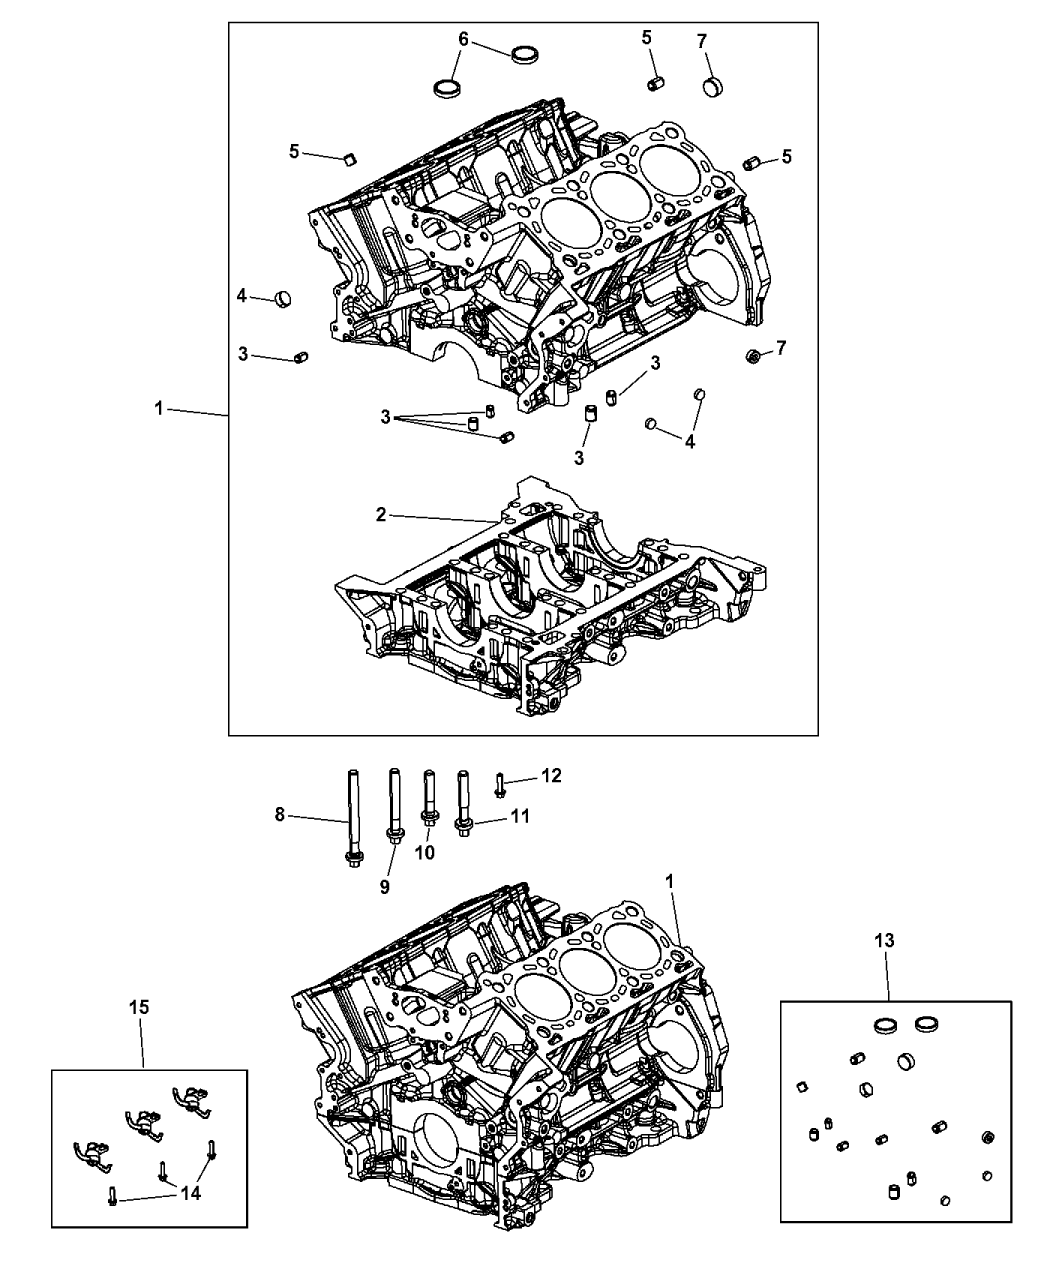 2014 jeep grand cherokee engine cylinder block and hardware